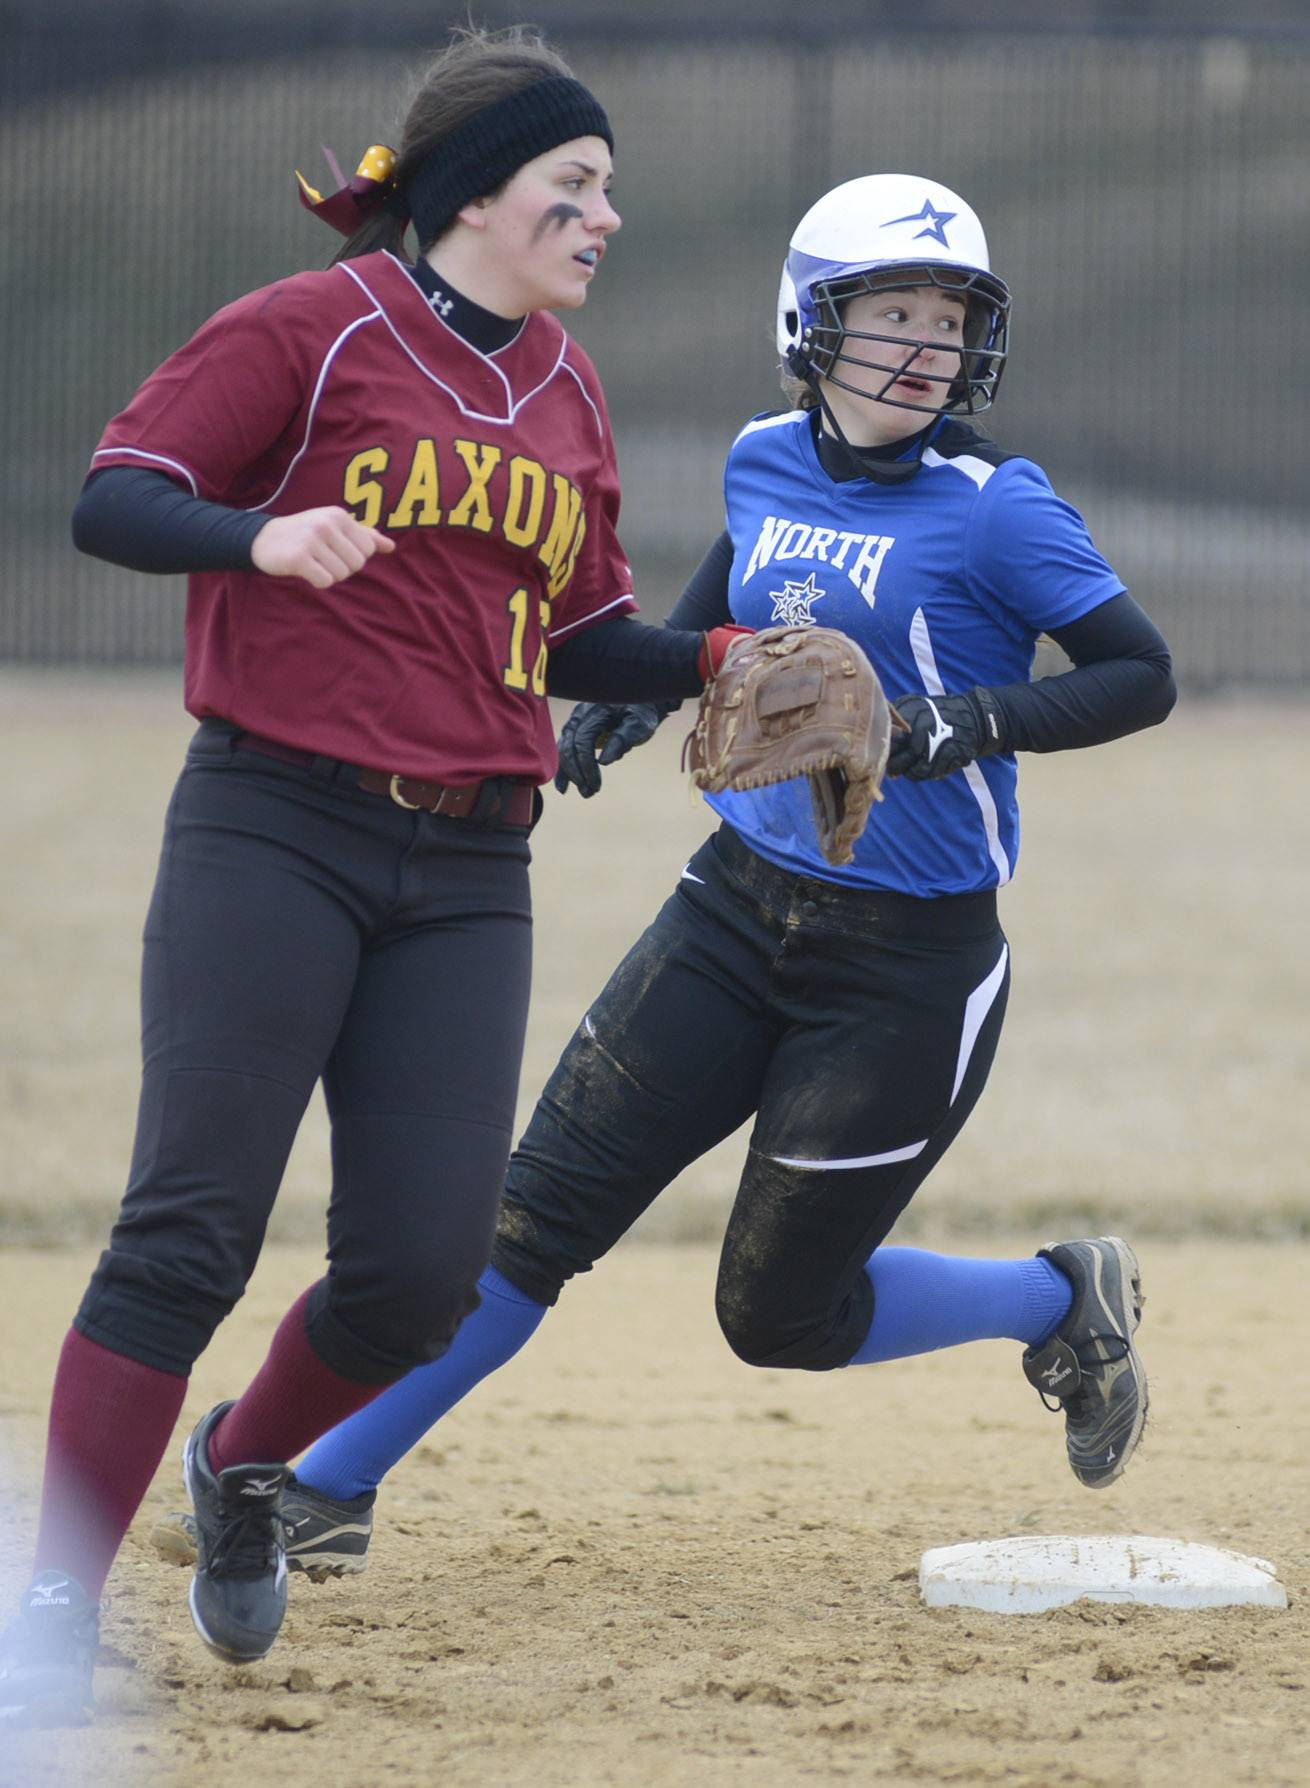 Laura Stoecker/lstoecker@dailyherald.comSchaumburg's Natalie Napier covers second base as St. Charles North's Alex Millett comes around the bag in the second inning on Wednesday, April 2.